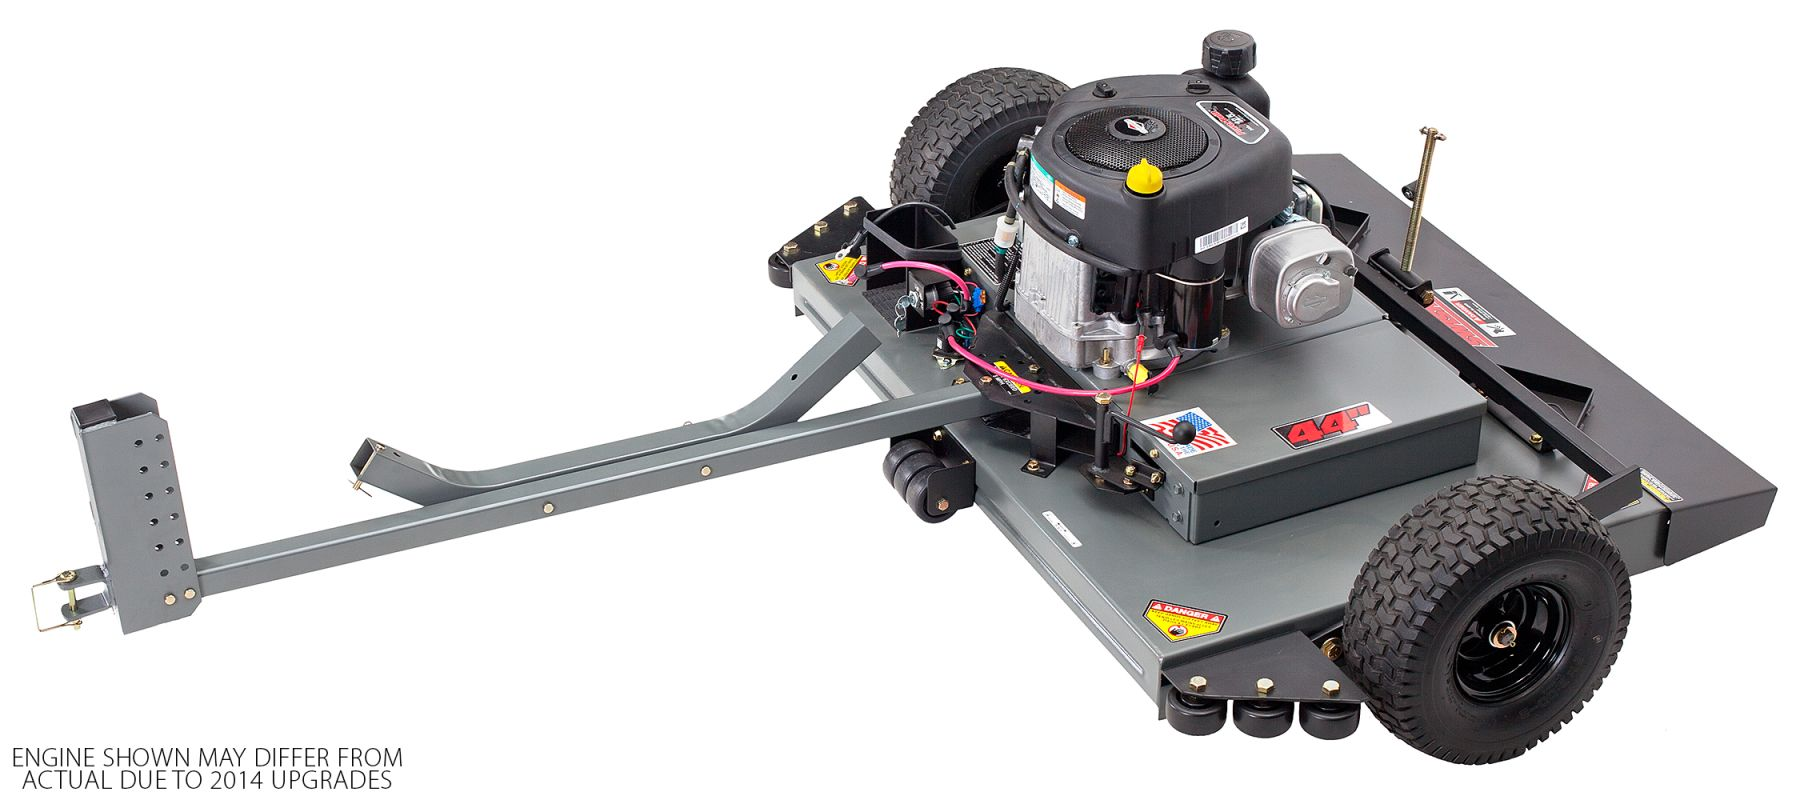 Tow Behind Finish Cut Trail Mower with 44 Inch Cutting Width - Swisher FCE11544BS